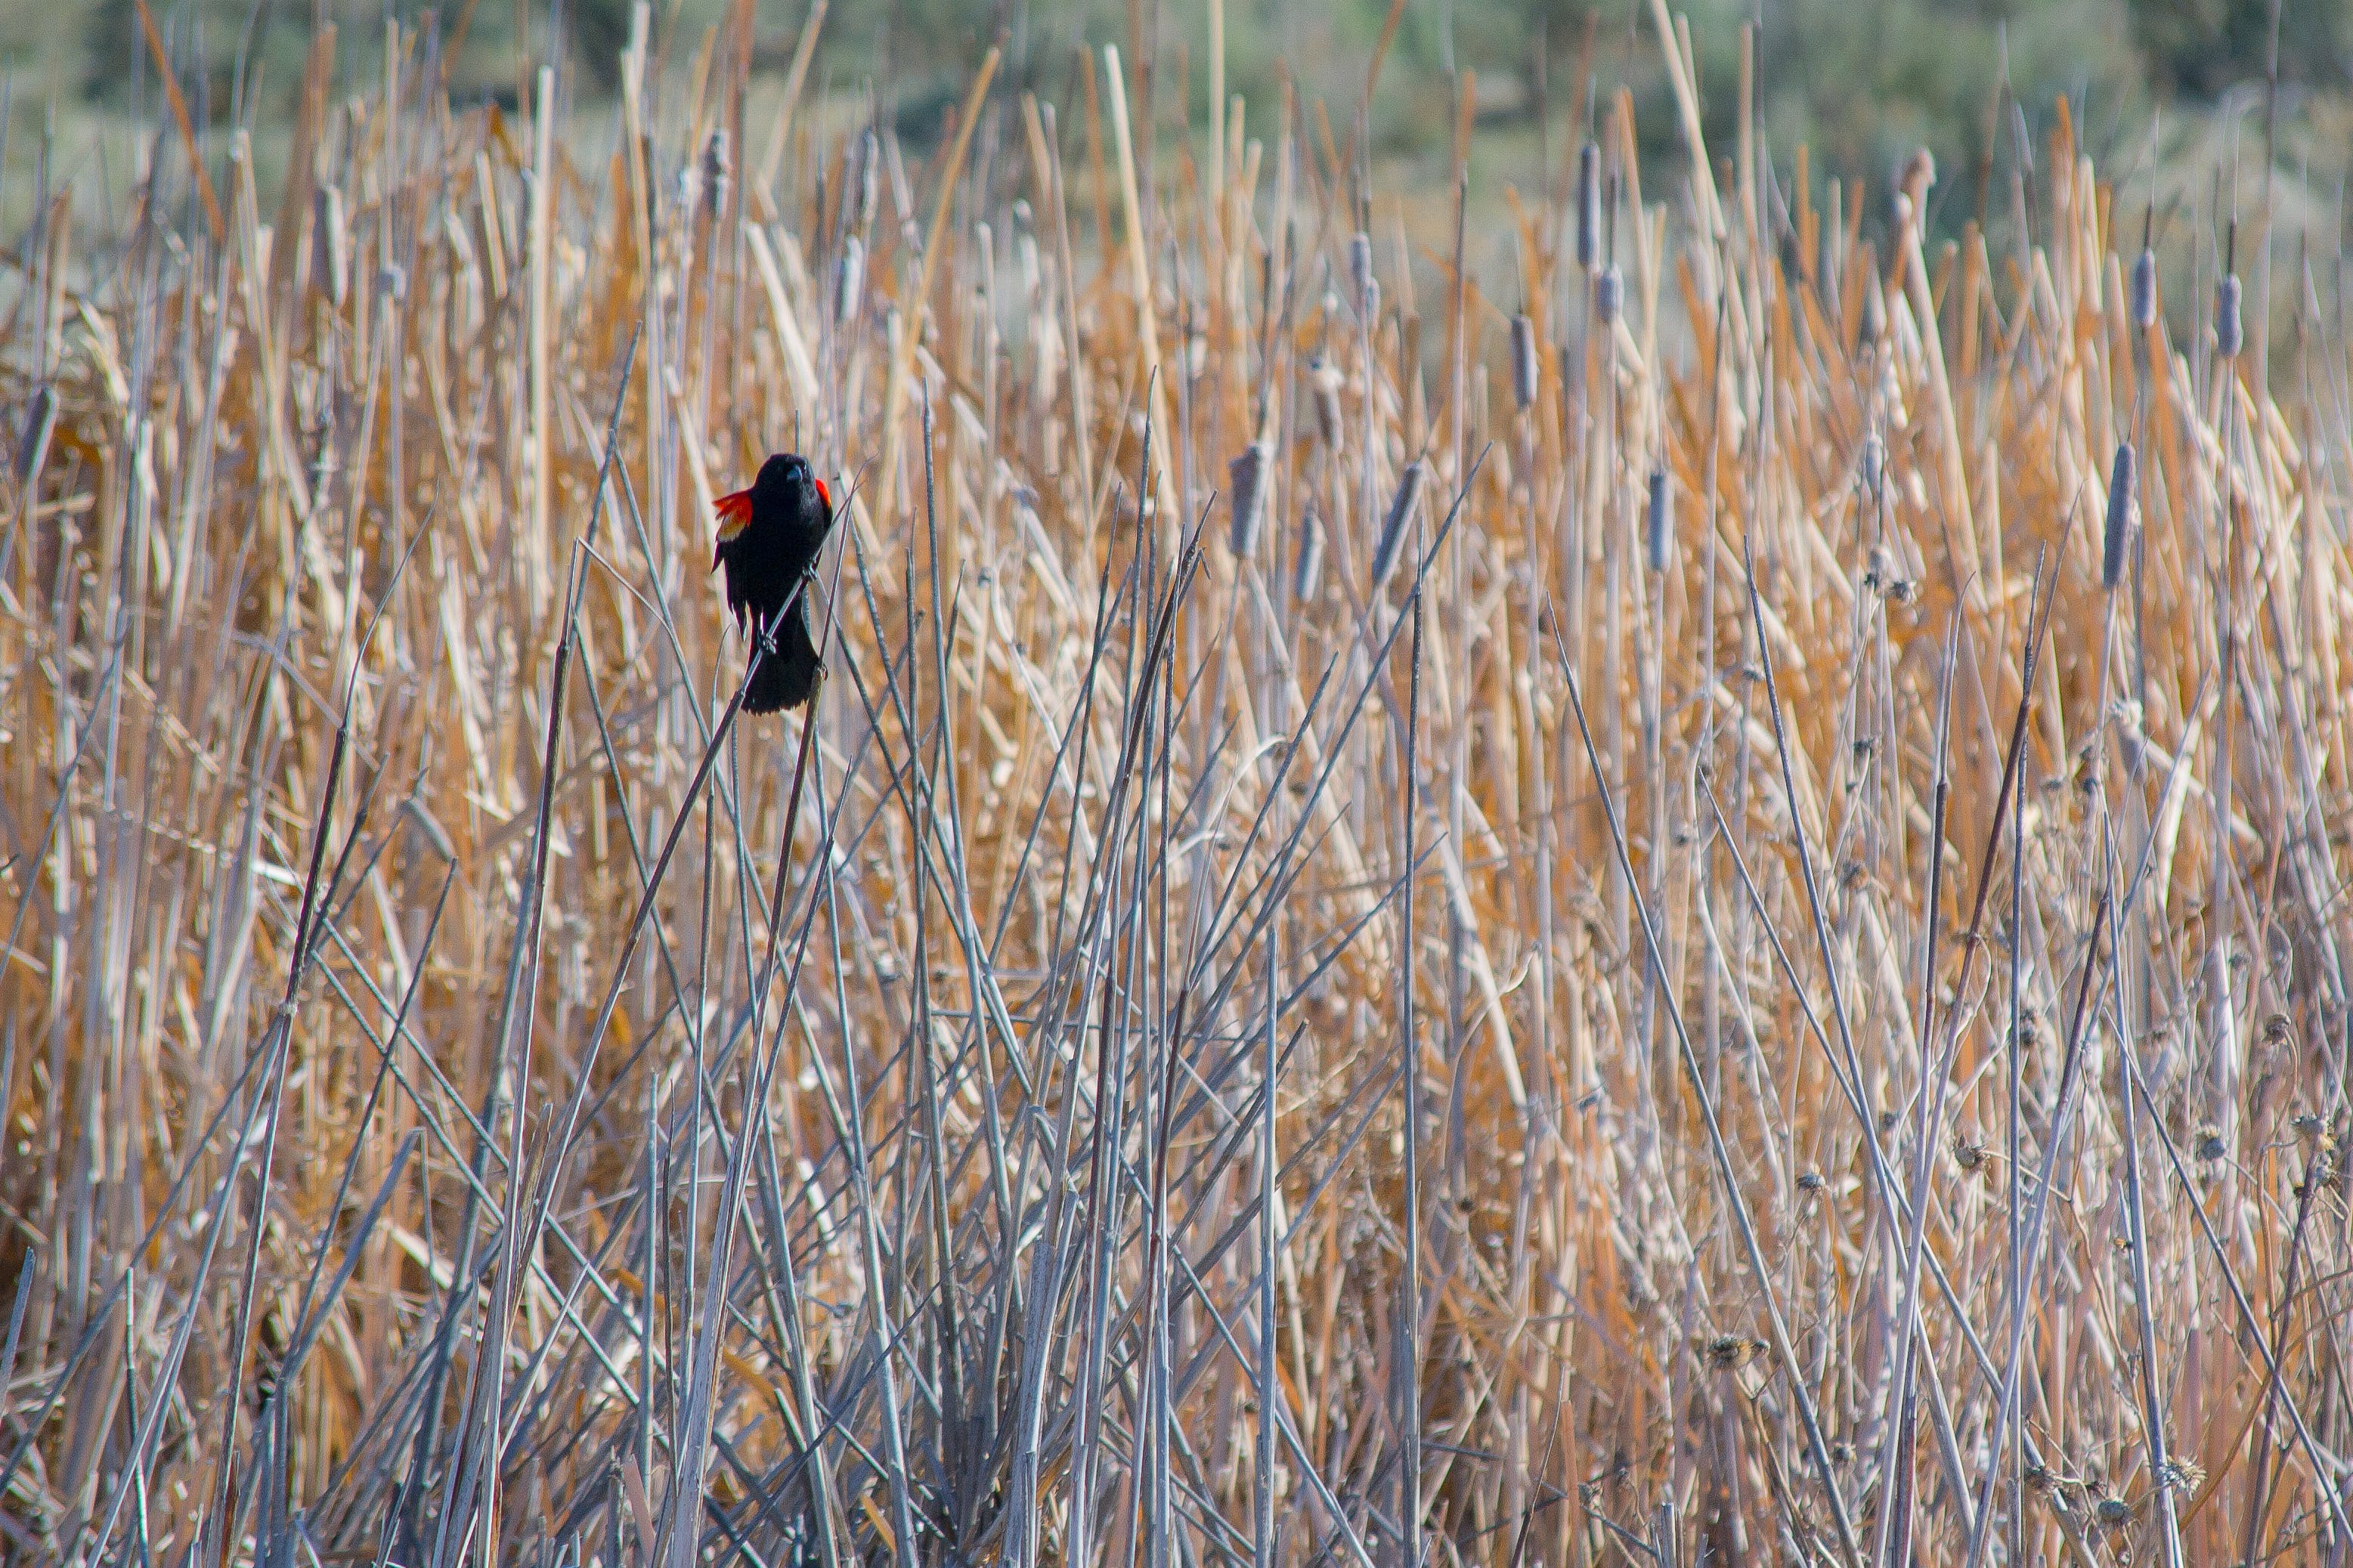 Red and Black Bird in the Middle of Field